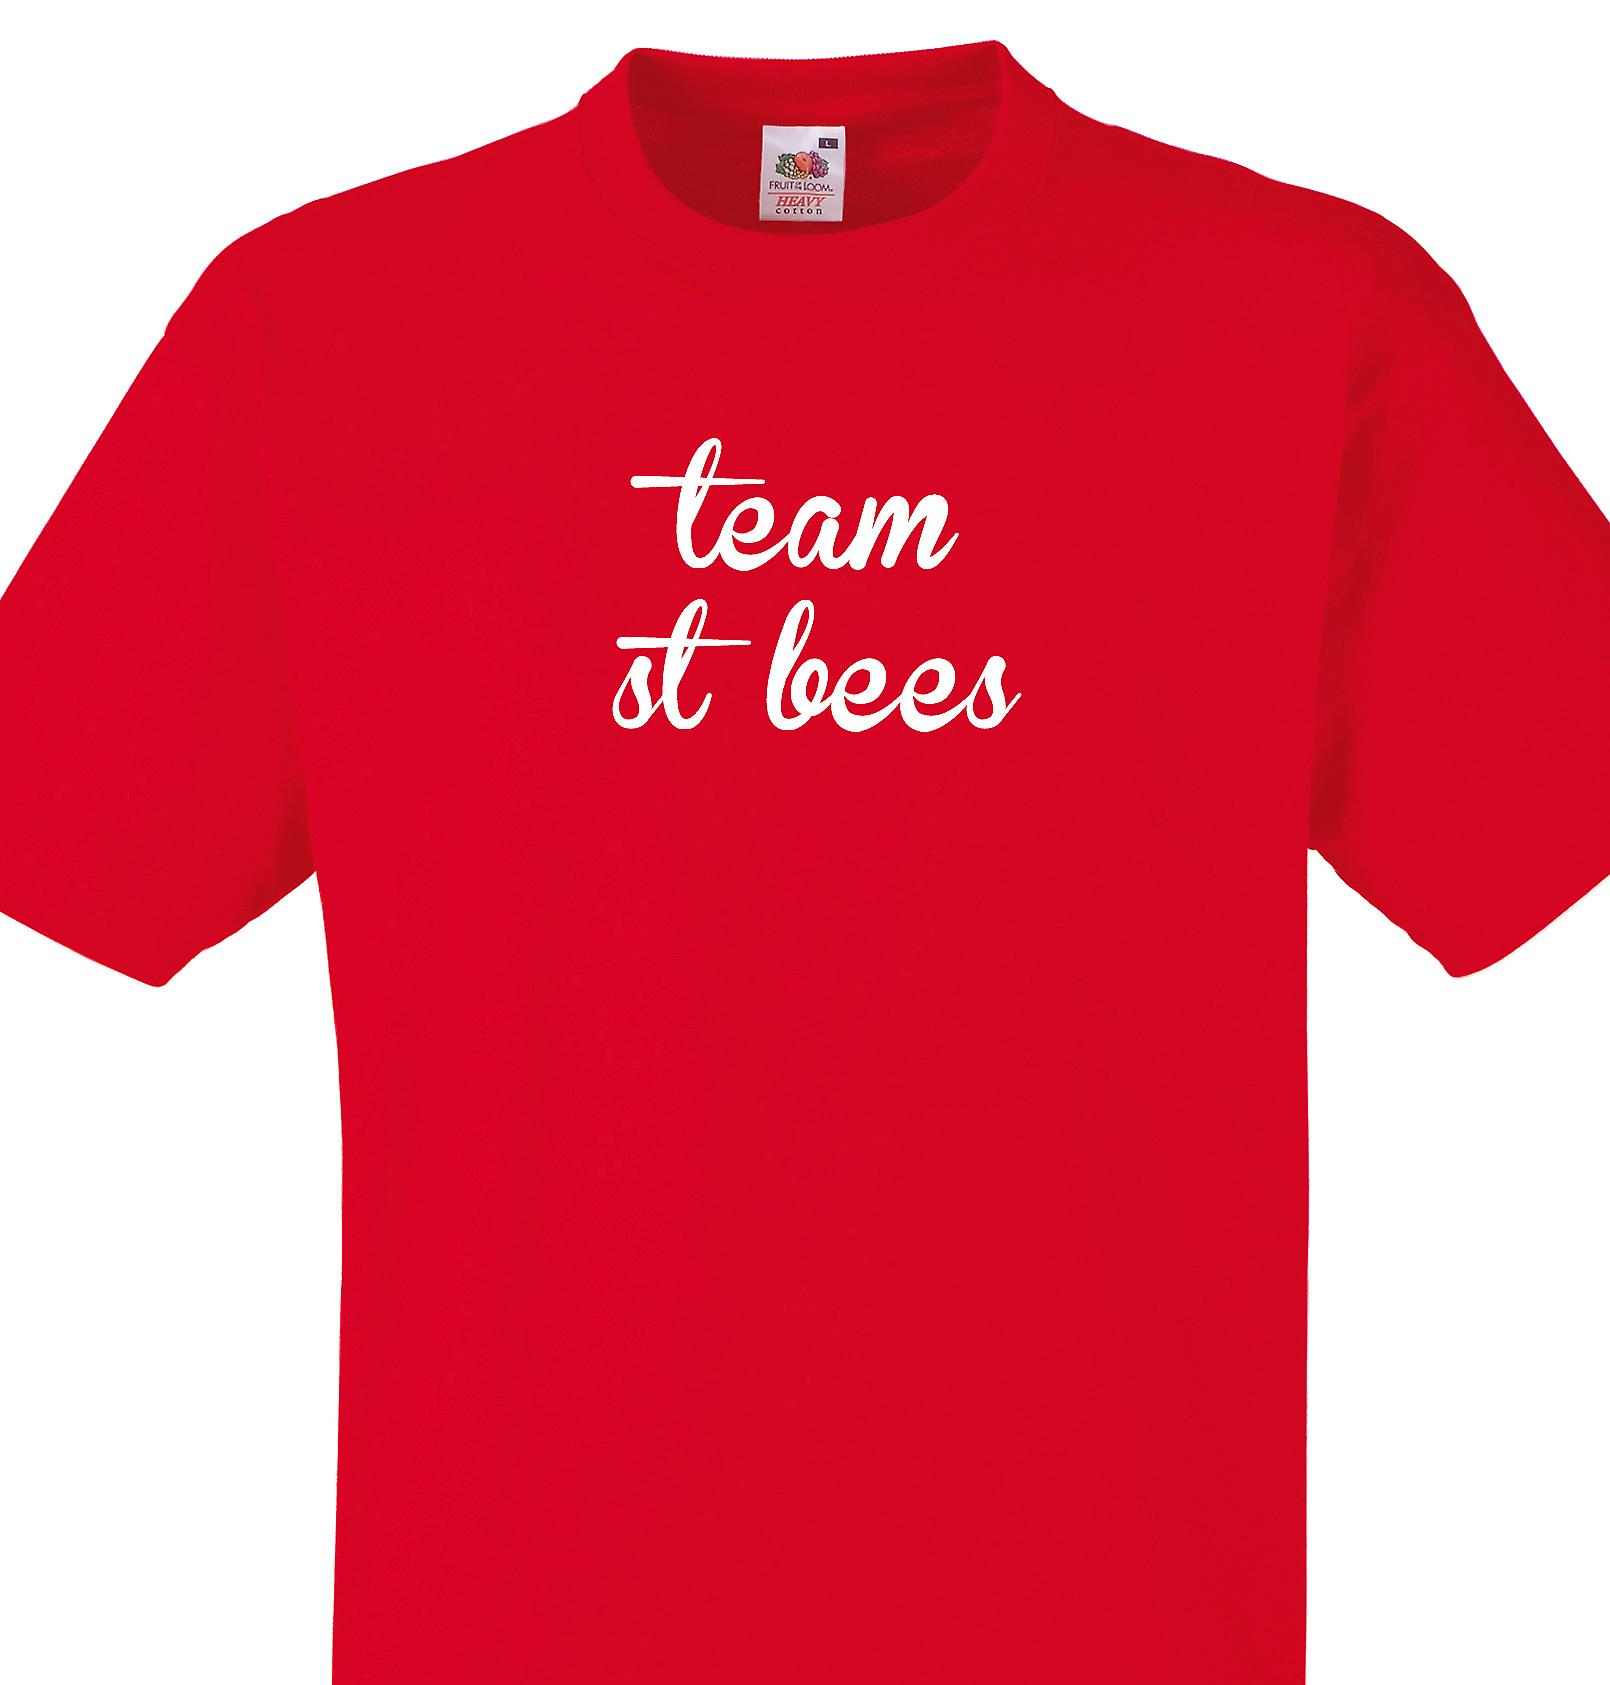 Team St bees Red T shirt